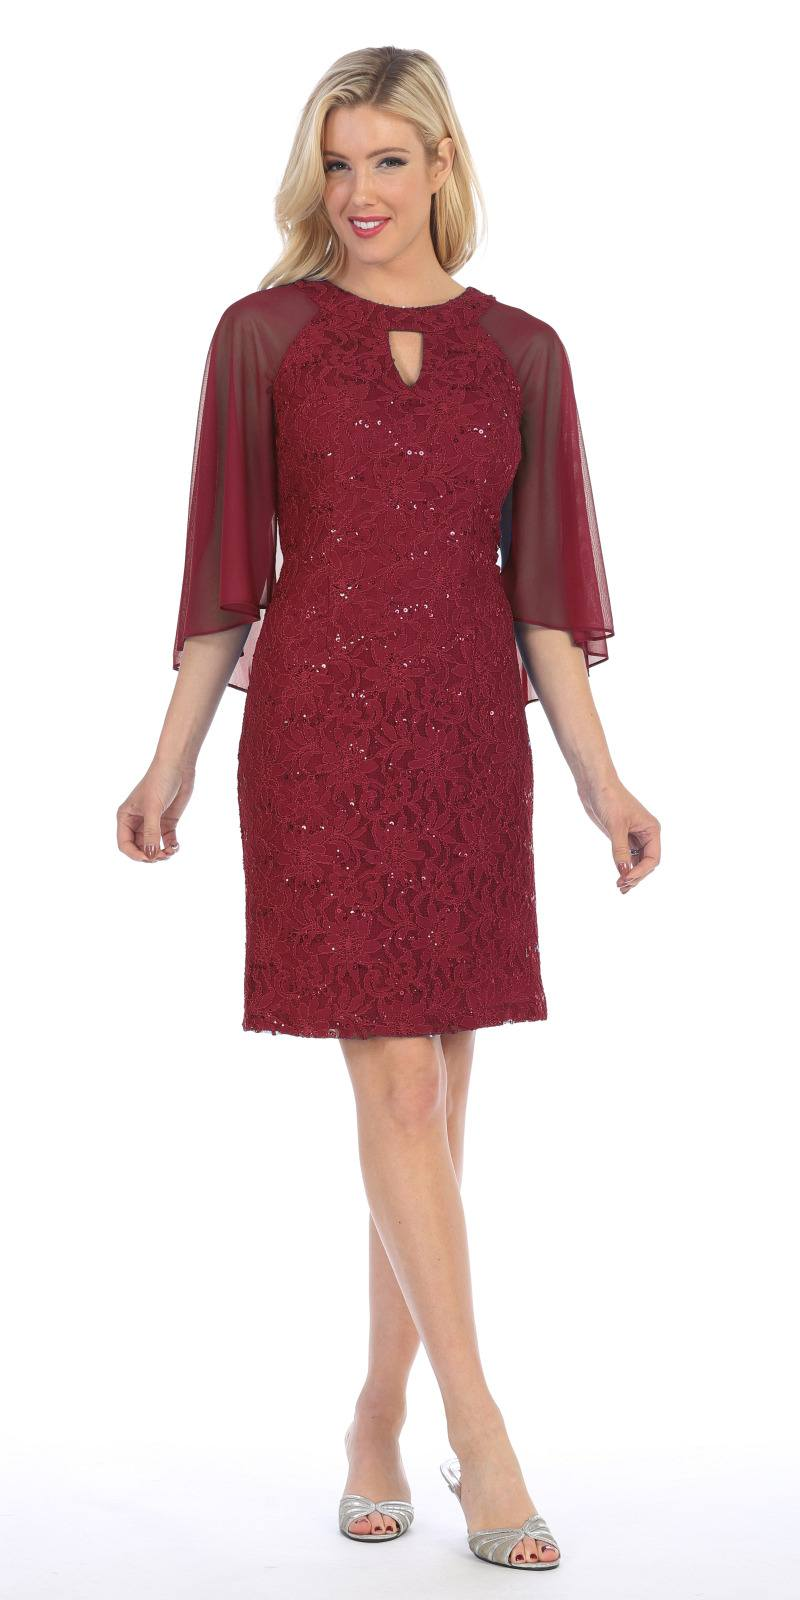 Wedding Guest Dresses With Sleeves.Burgundy Wedding Guest Dress With Flutter Sleeves